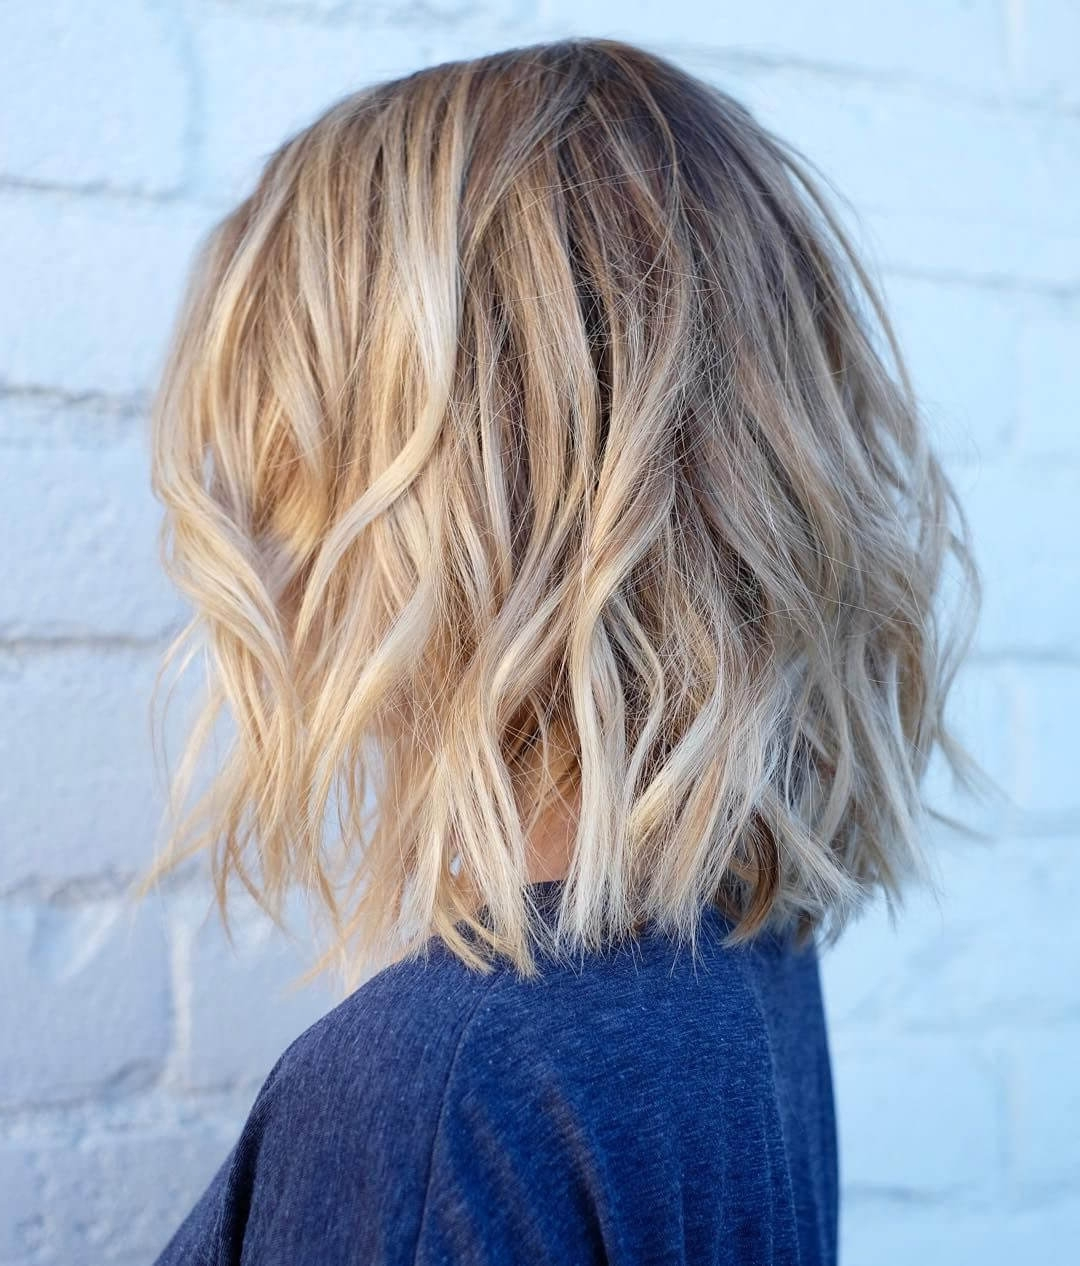 50 Fresh Short Blonde Hair Ideas To Update Your Style In 2018 Throughout Most Popular Loose Curls Blonde With Streaks (View 4 of 20)